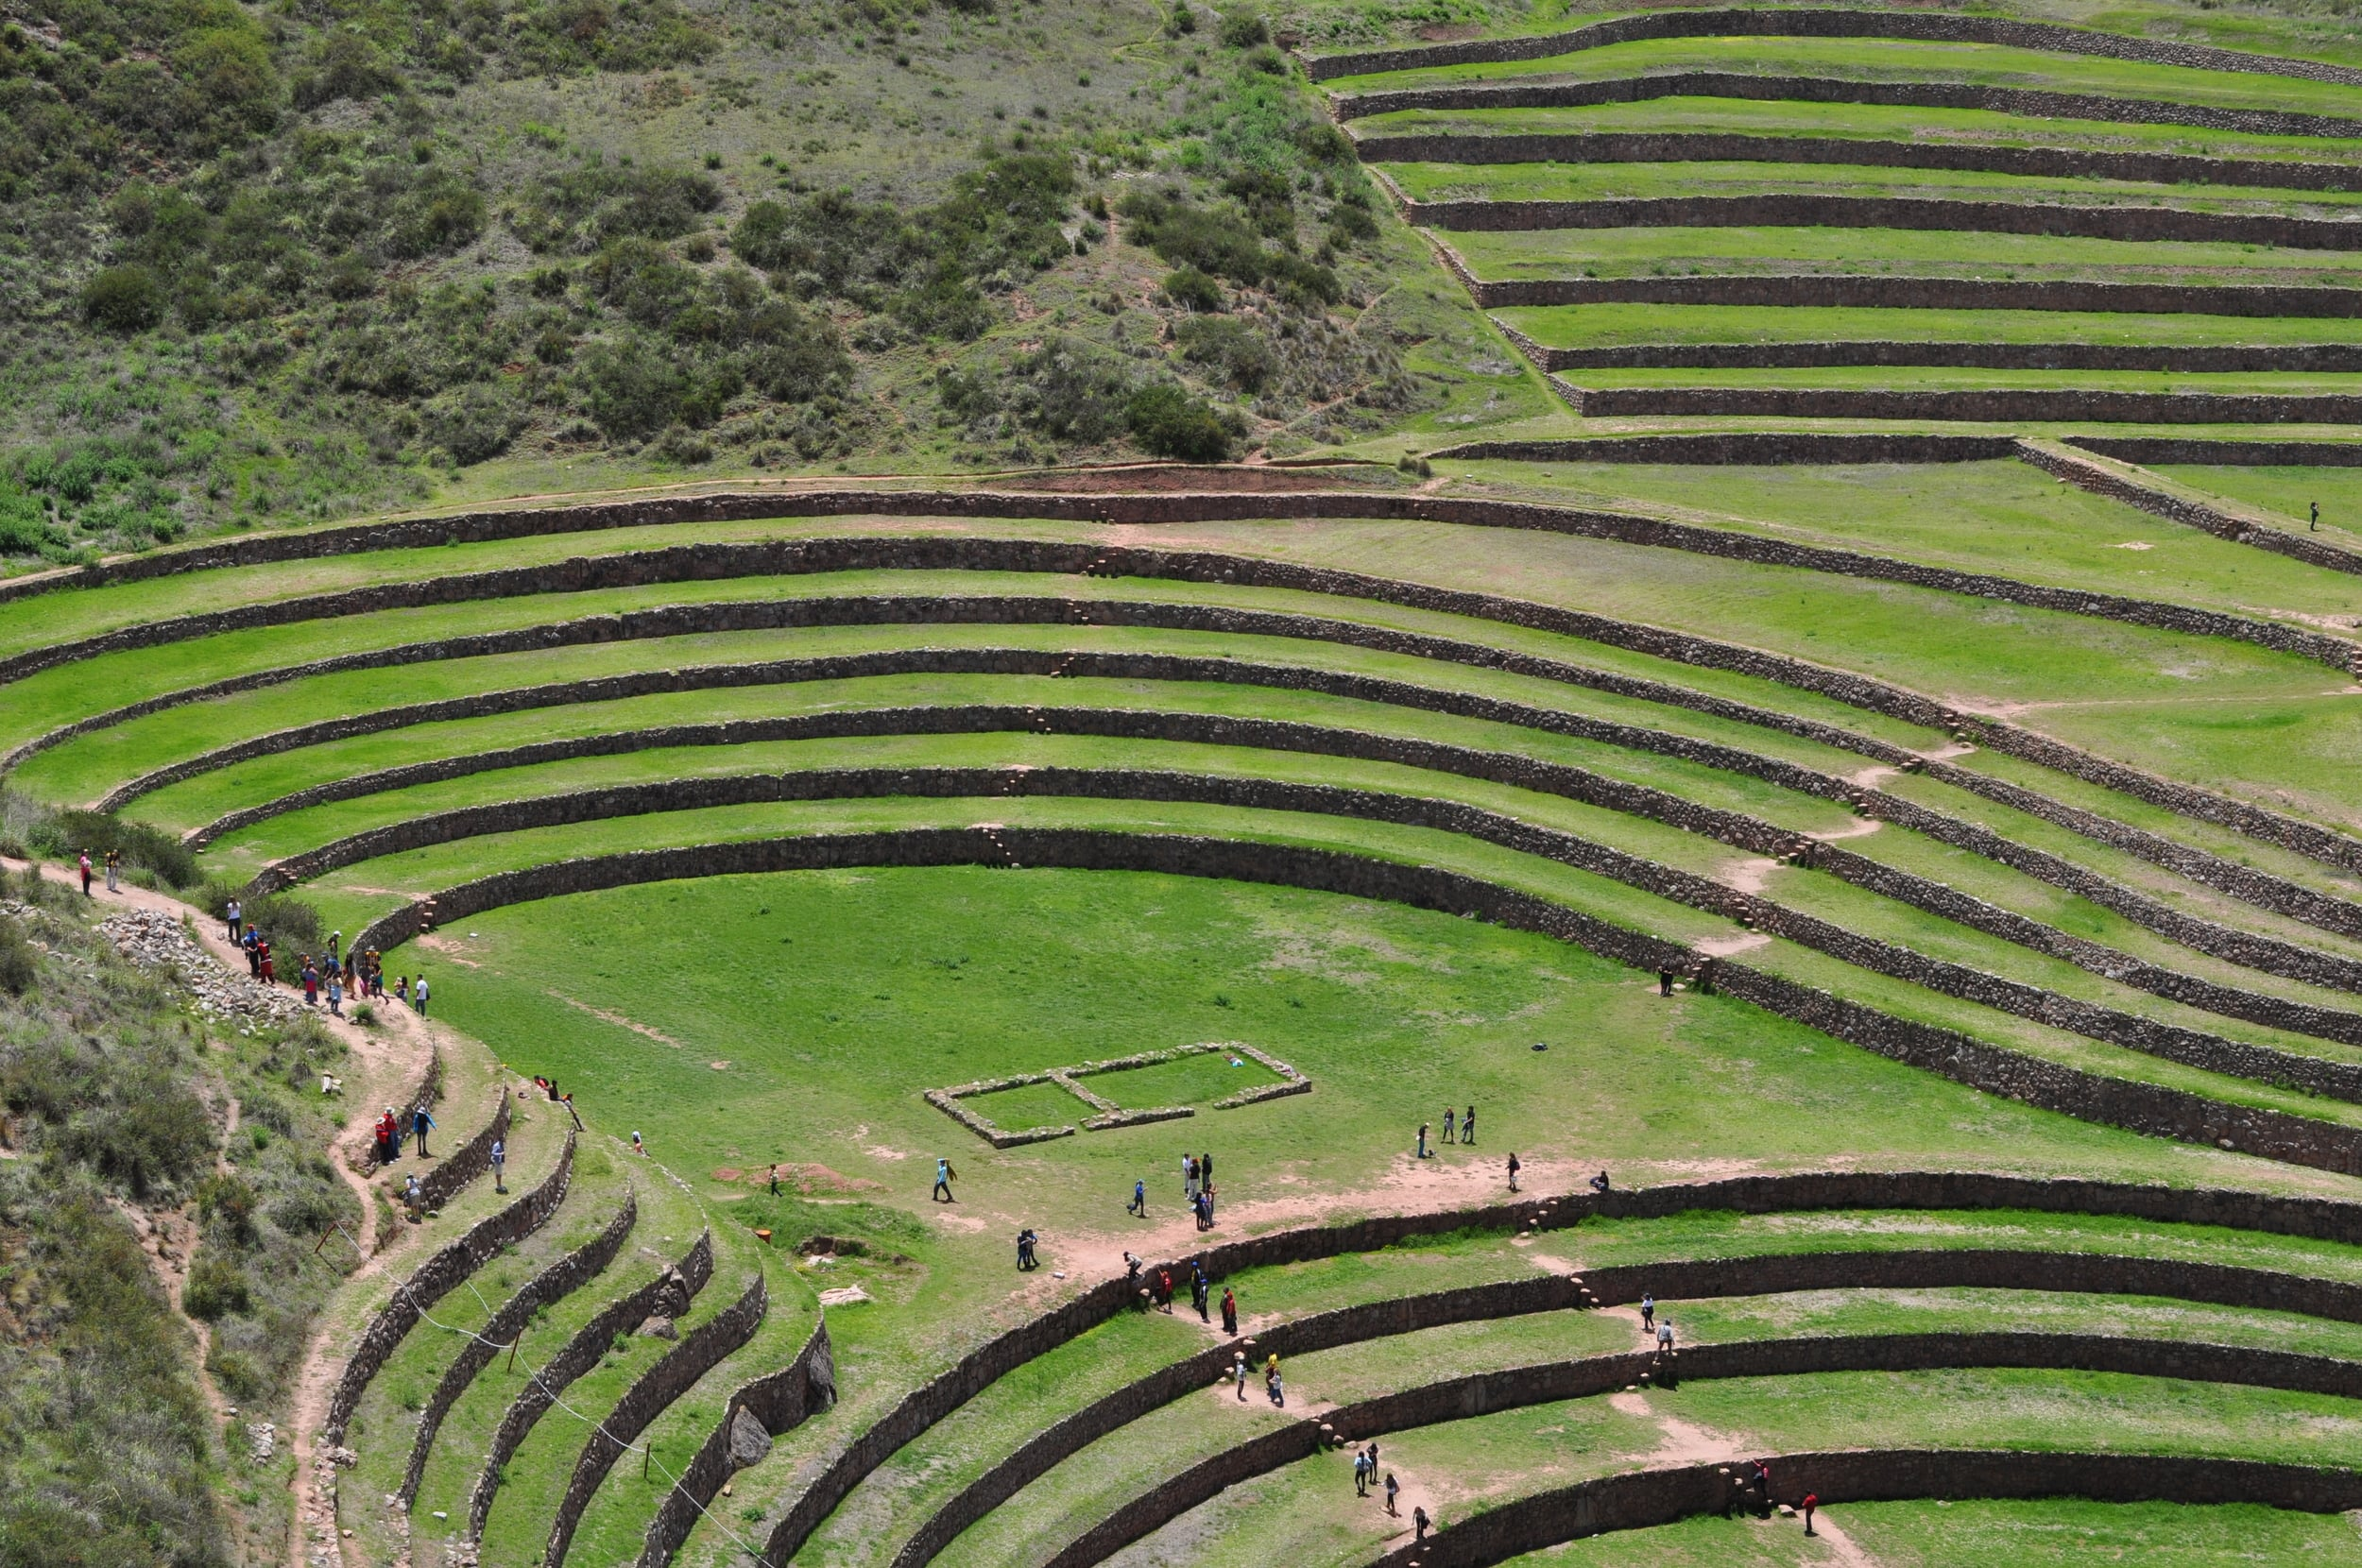 The farming terraces have a circular or semicircular shape, as if they were amphitheaters. Photo: Pamy Rojas